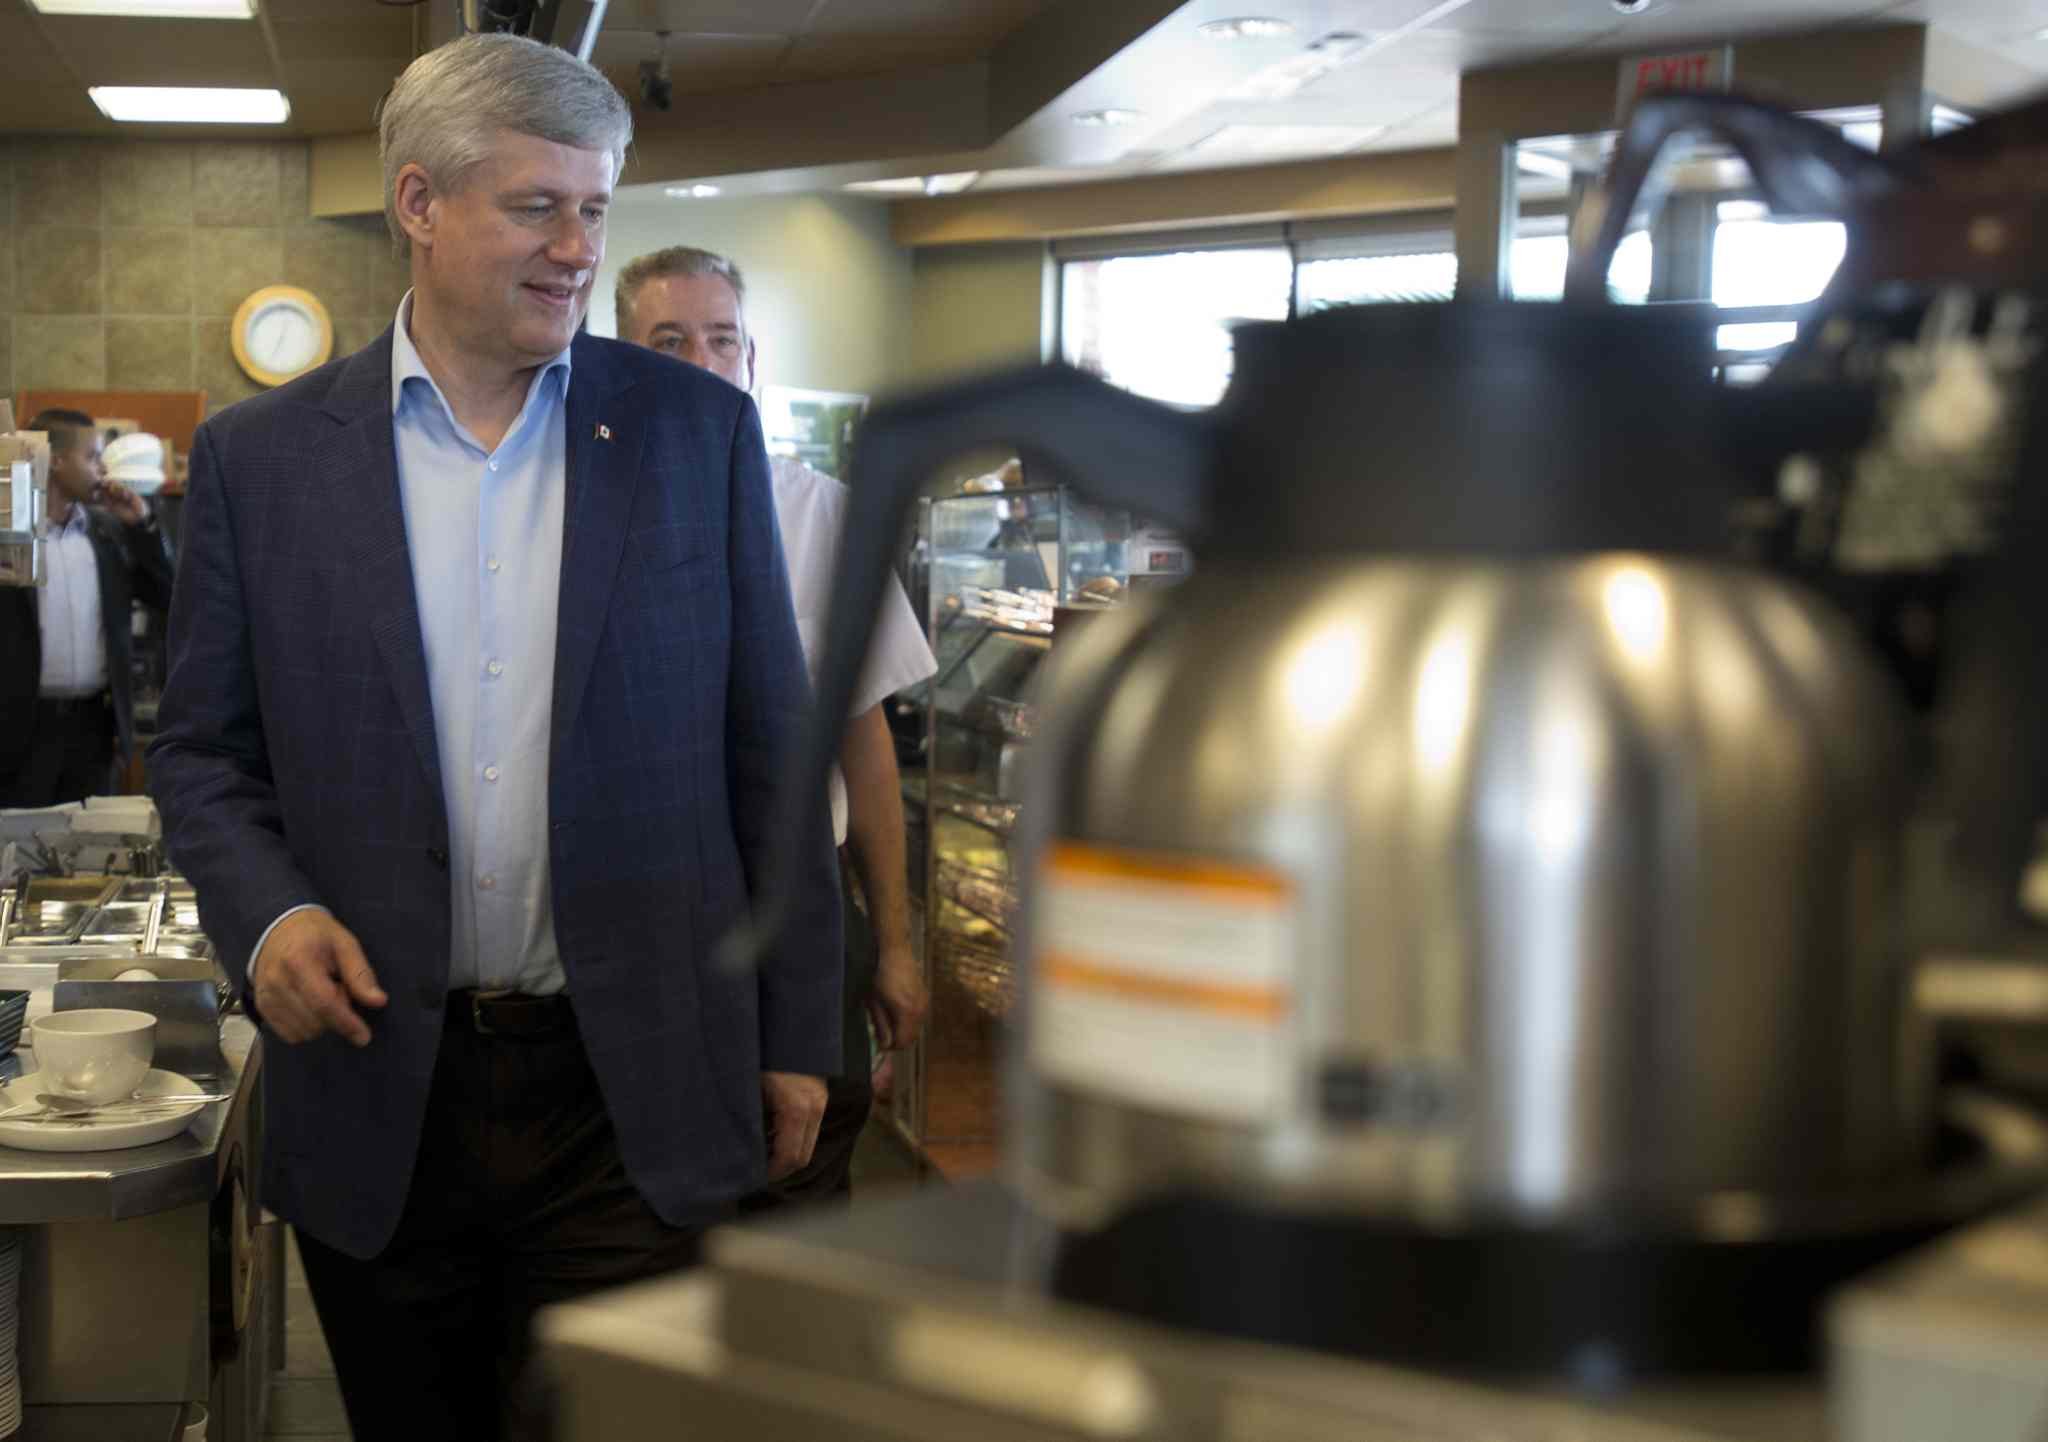 Conservative leader Stephen Harper walks behind the counter to serve coffee to supporters as he stops at a Tim Hortons in Gananoque, Ont., on Monday.